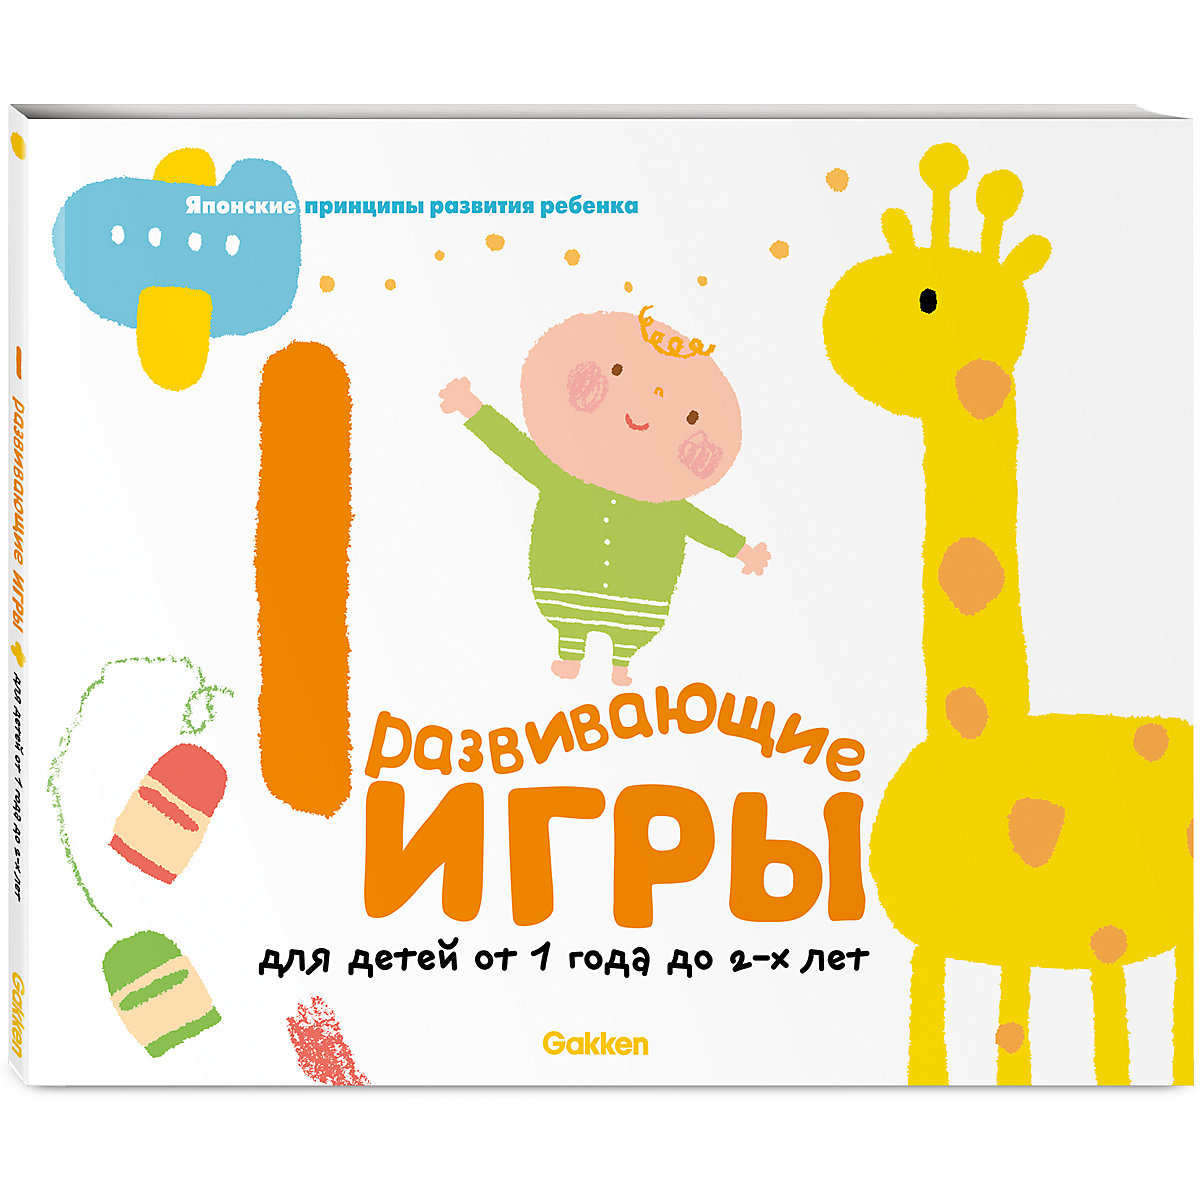 Books EKSMO 7367761 Children Education Encyclopedia Alphabet Dictionary Book For Baby MTpromo